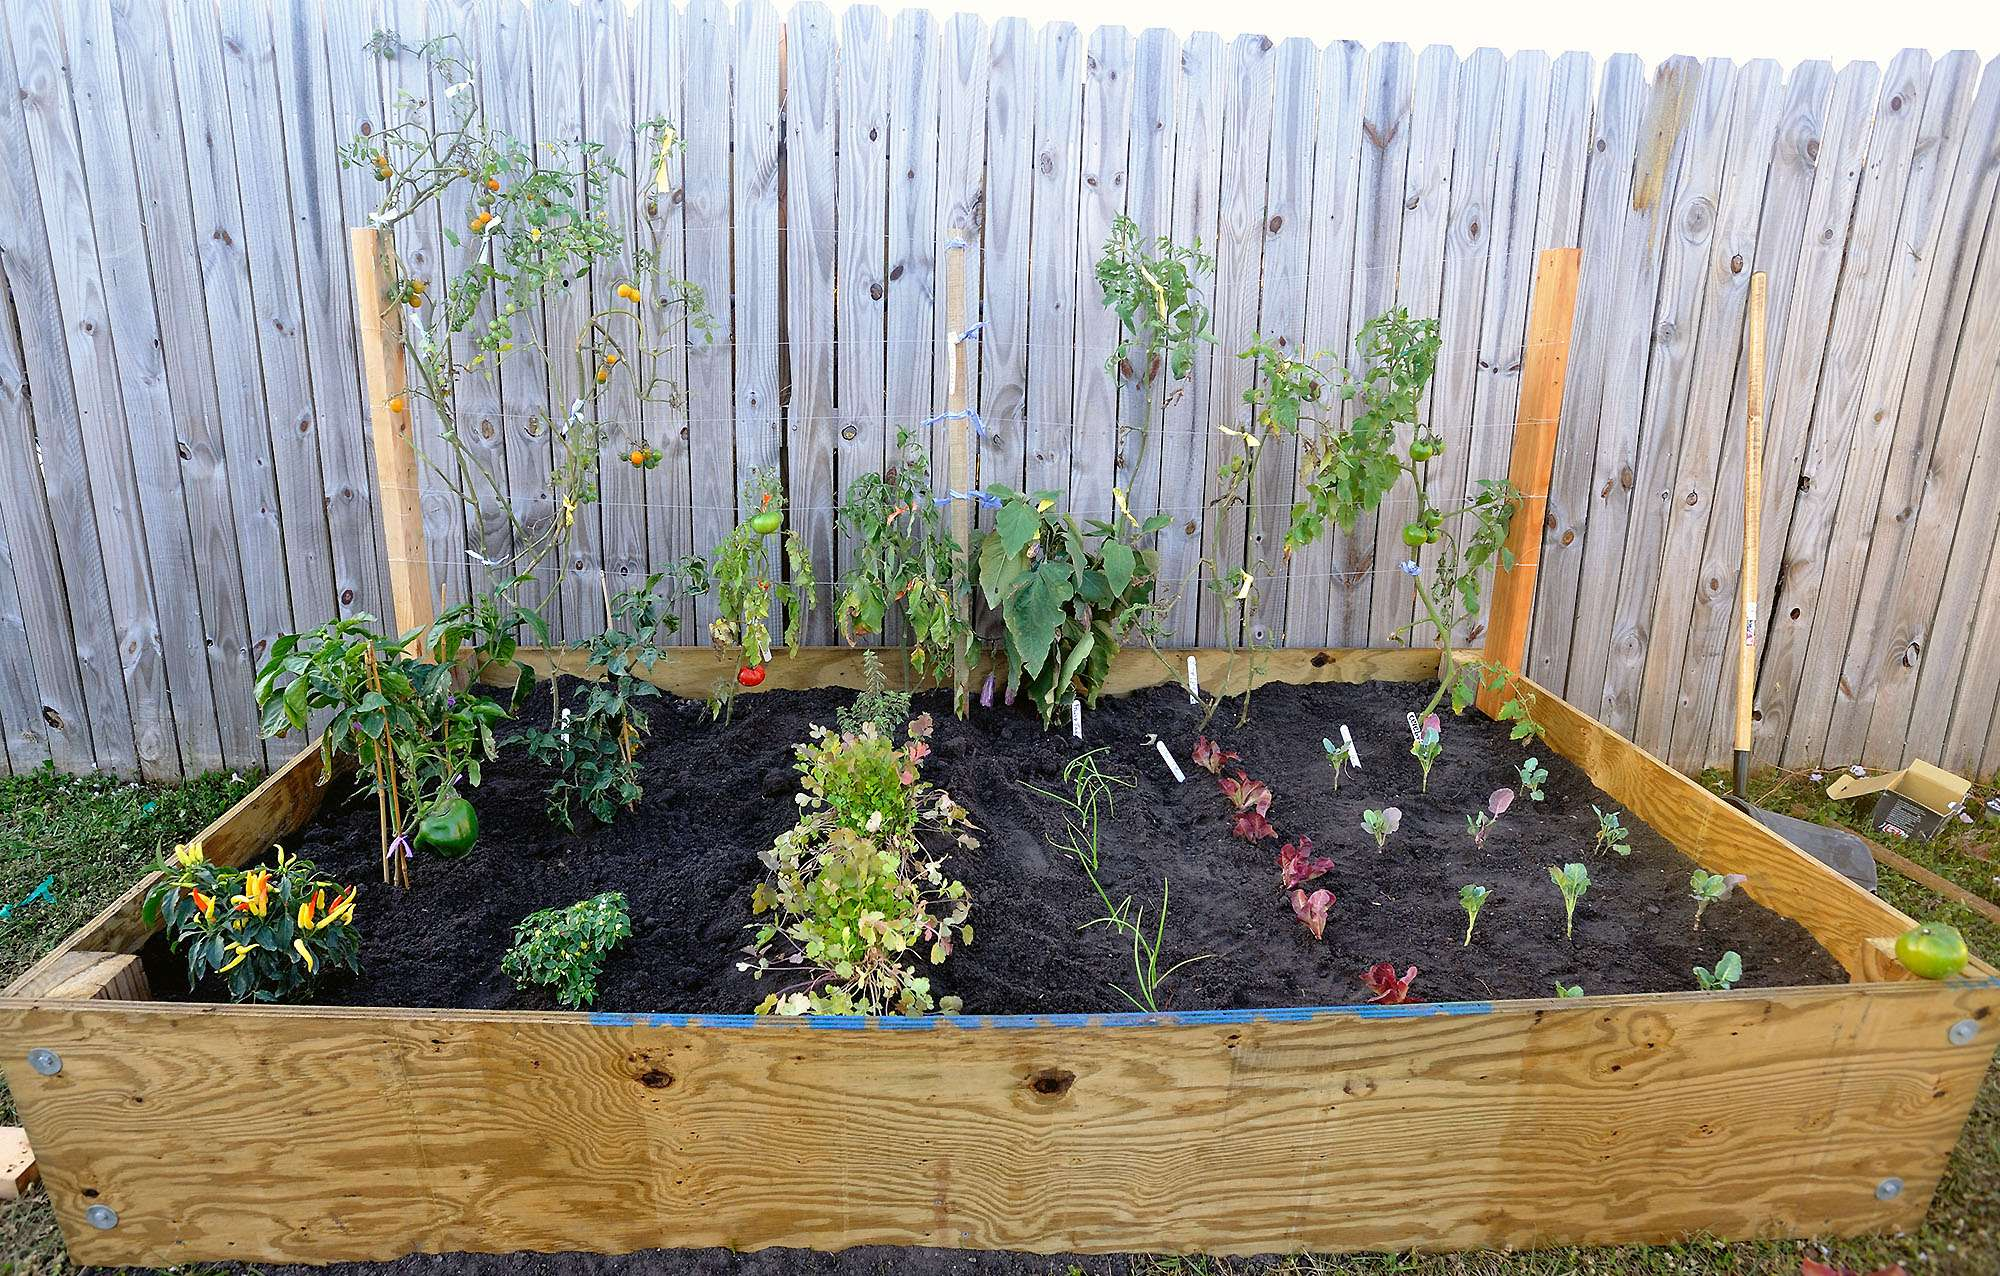 Fully Planted Ready Produce Raised Backyard Vegetable Garden